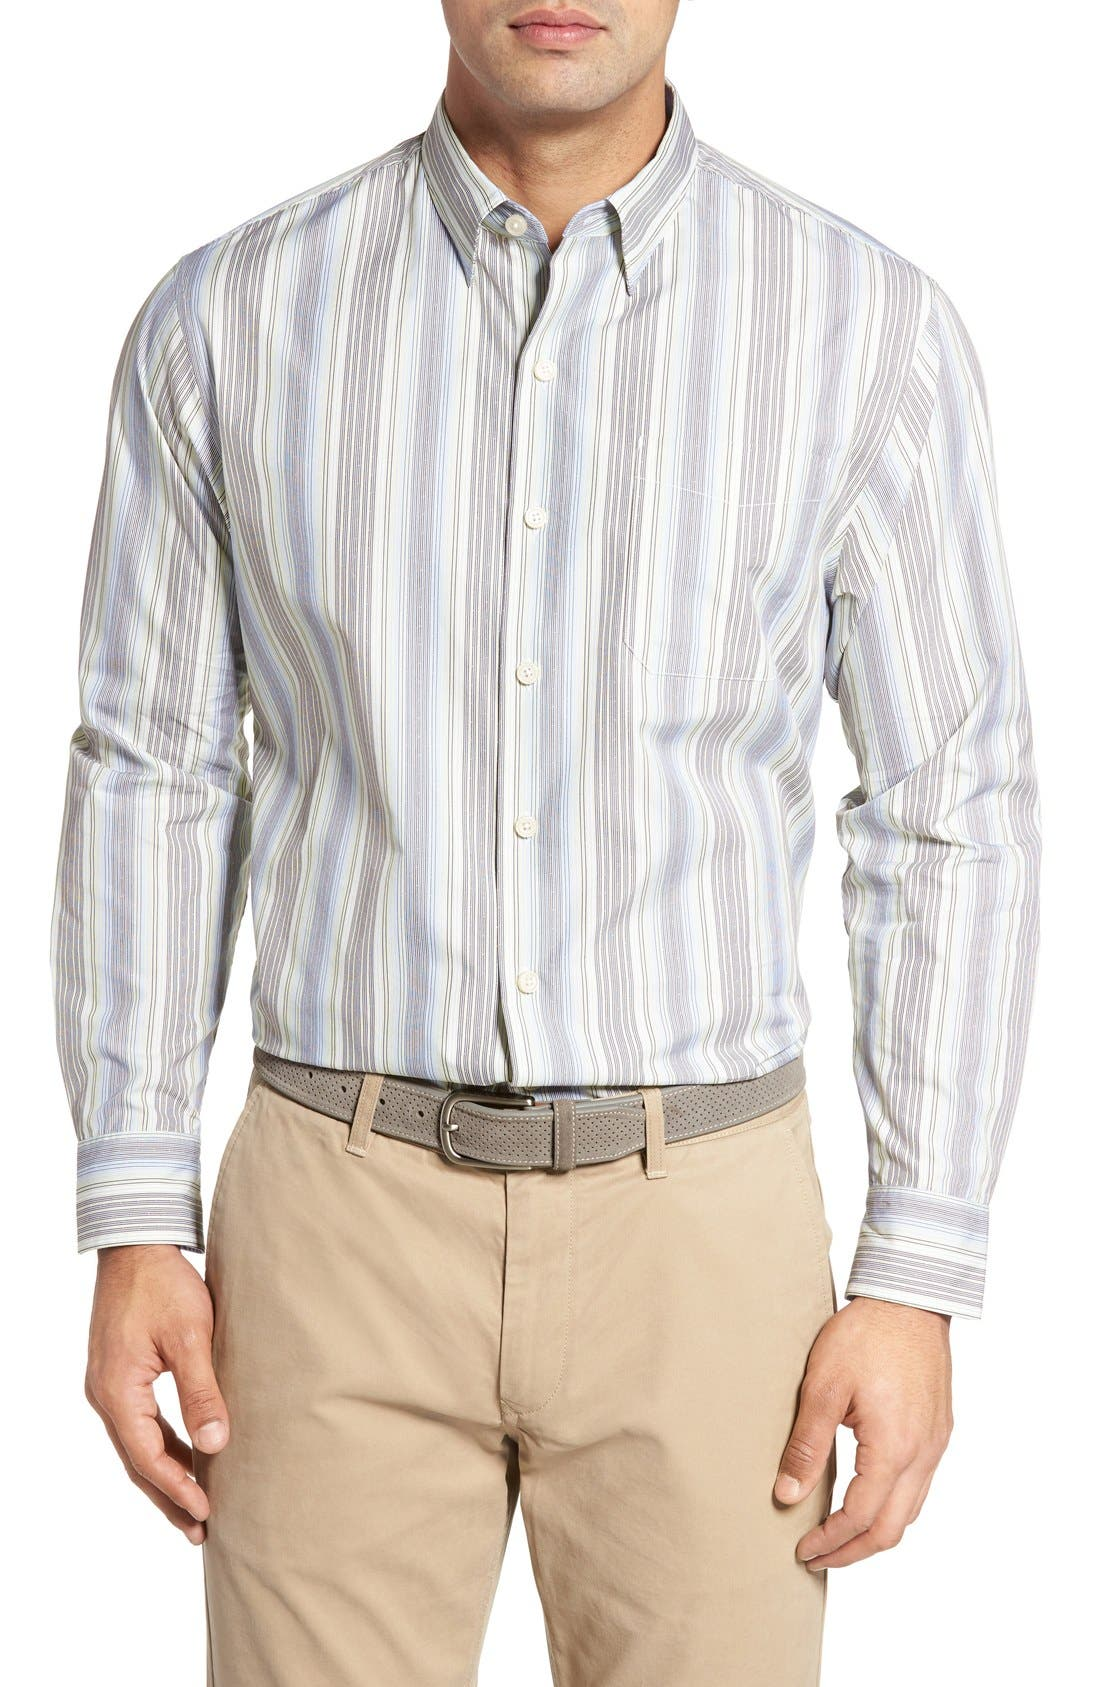 Alternate Image 1 Selected - Tommy Bahama Roda Viva Original Fit Sport Shirt